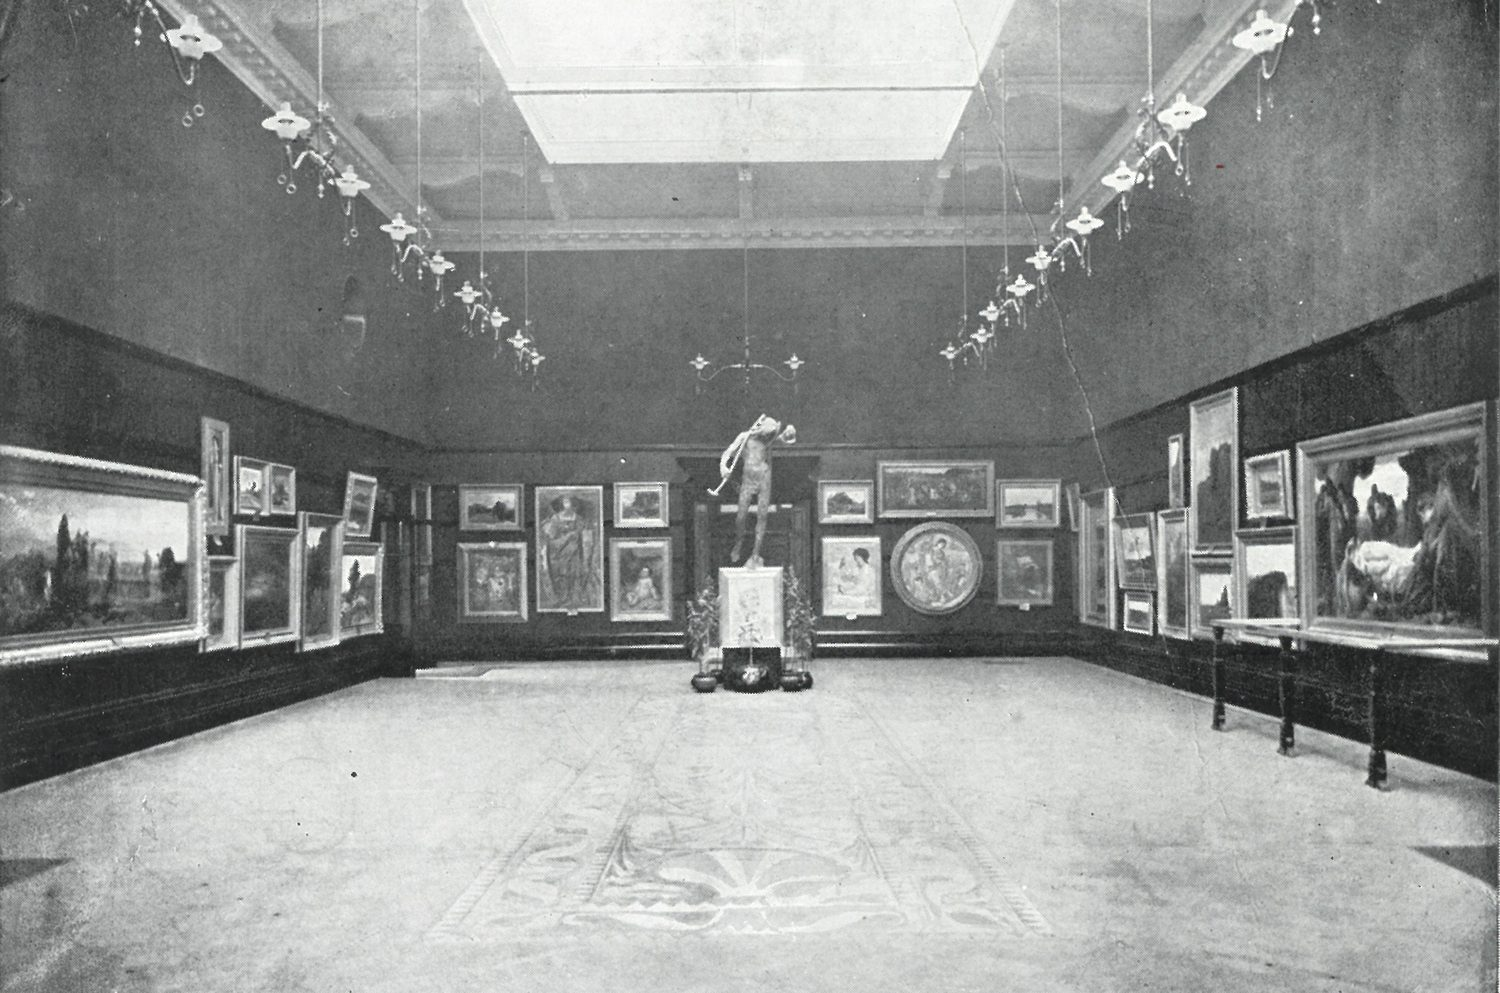 Black and white photograph of the Main Gallery with work on the walls and the marquetry floor visible